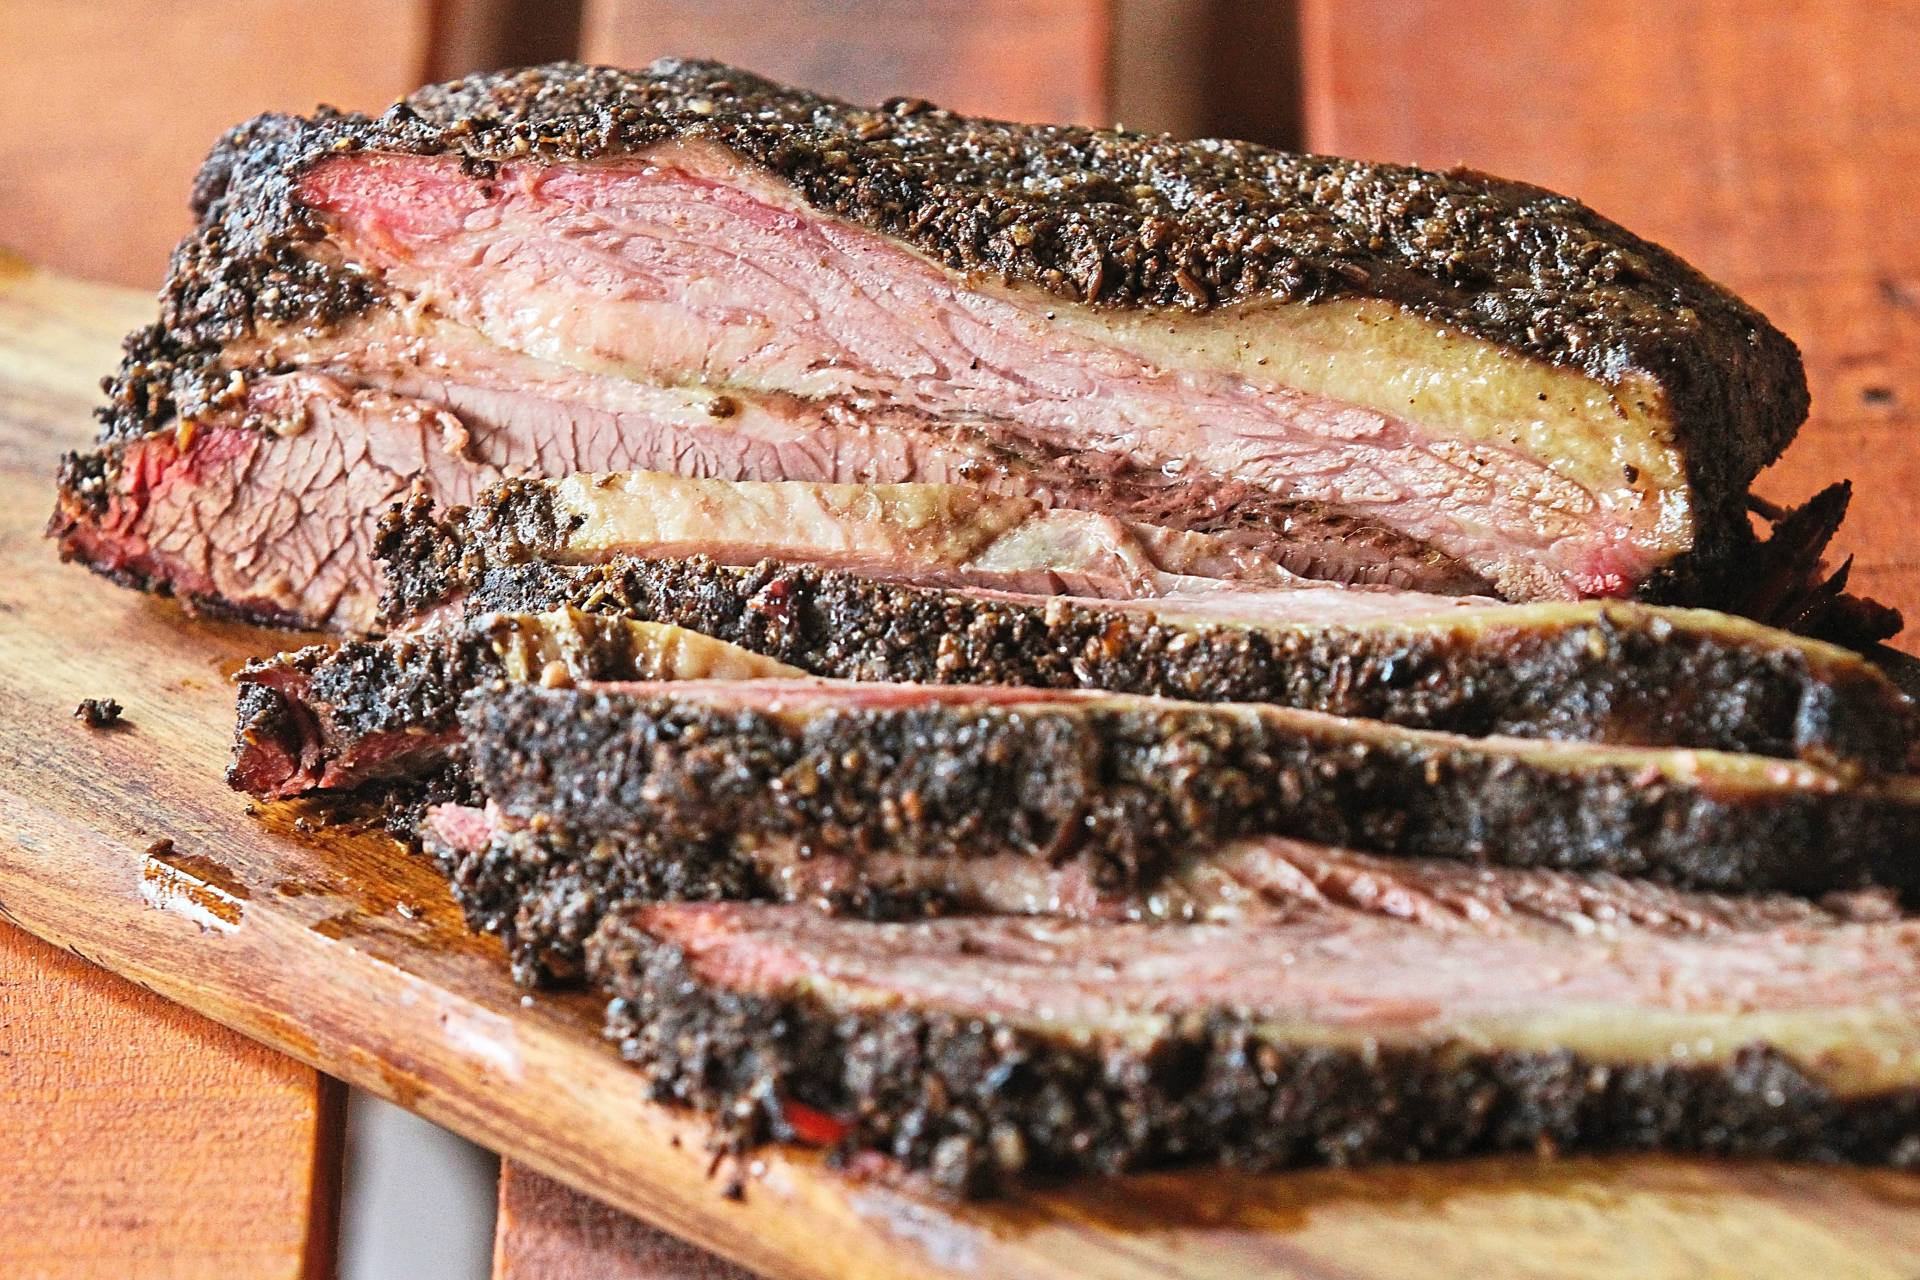 The brisket is a smoky beauty that you're likely to fall in love with upon first bite.